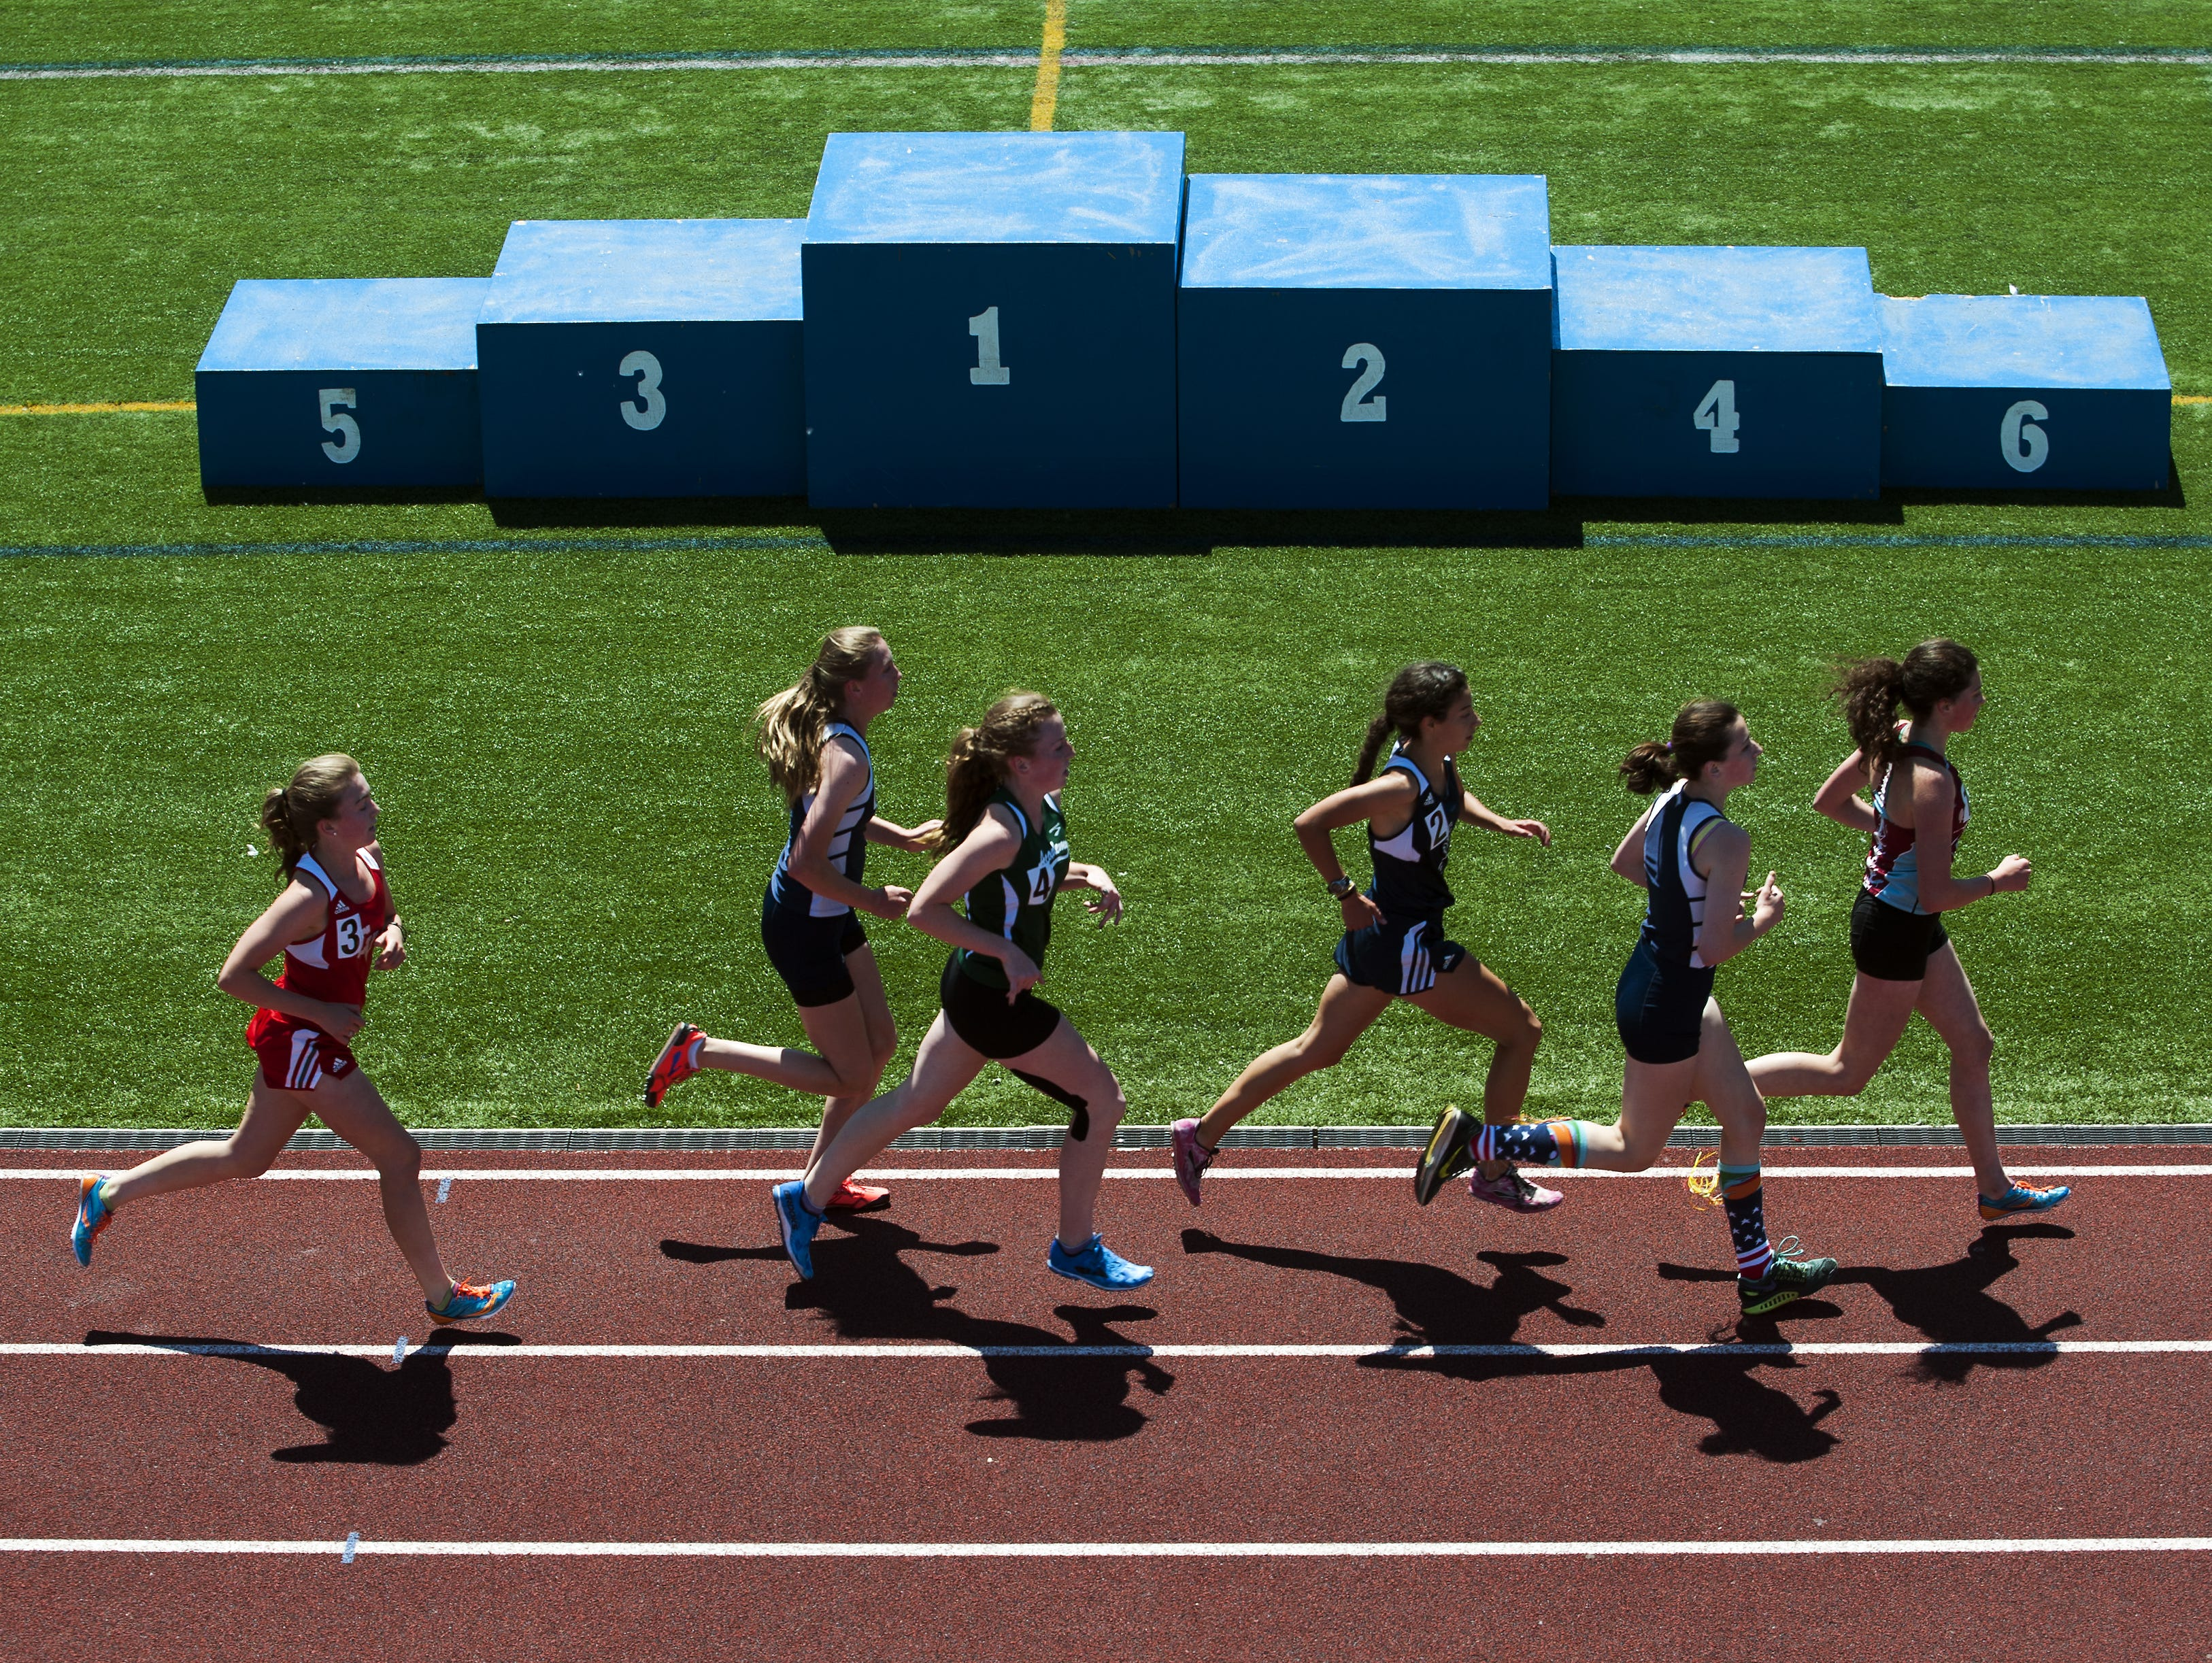 Racers compete in the 3000m run during the high school track and field state championship meet at Burlington High School on Saturday June 6, 2015 in Burlington, Vermont.